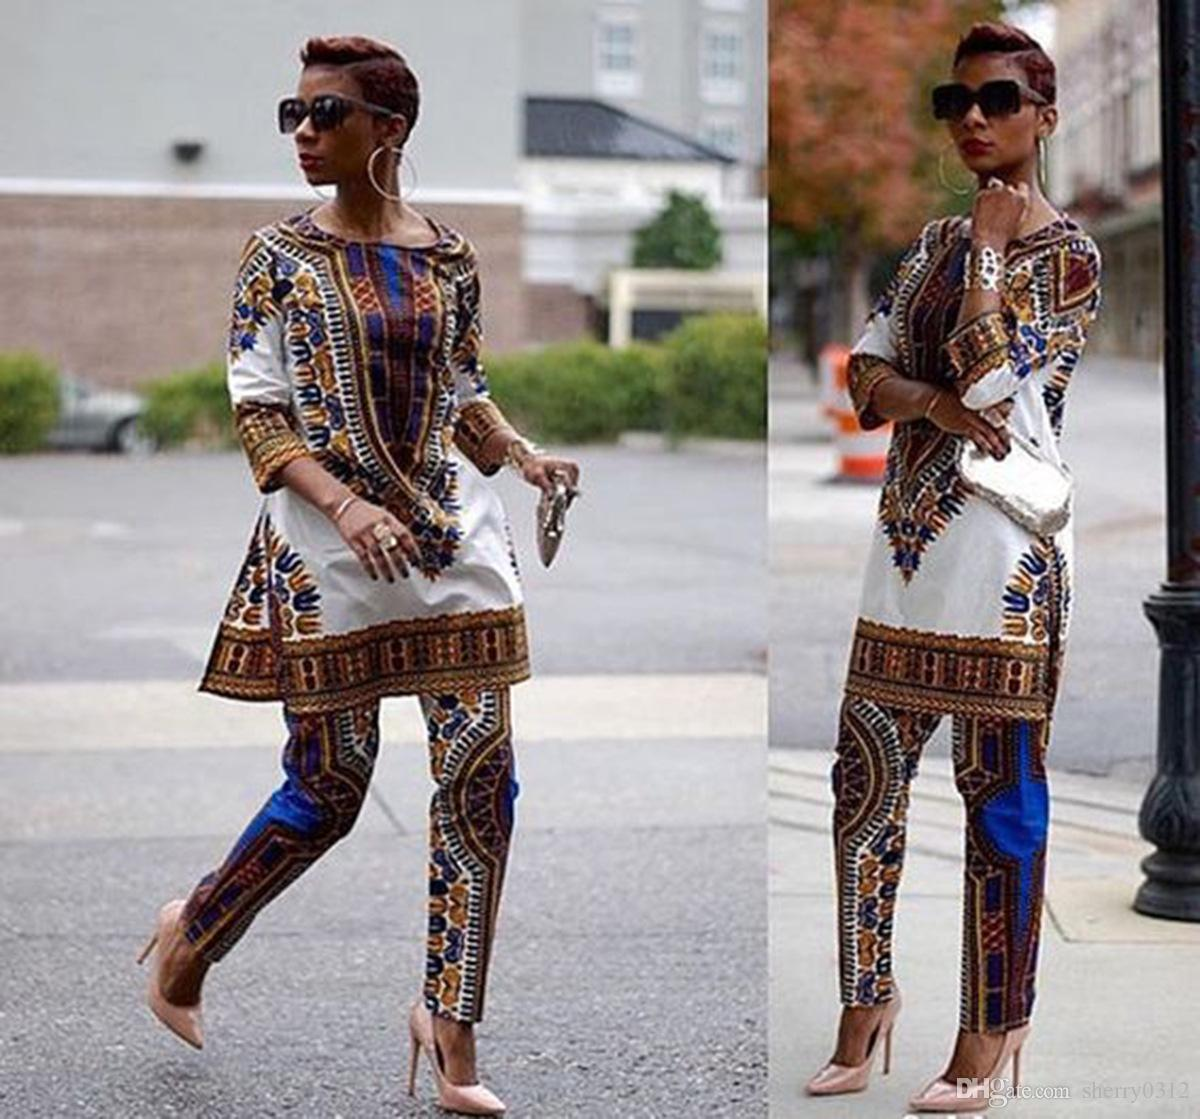 ae80785b833 2019 2016 New African Fashion Design Dress Suits Women Traditional Print  Dashiki National Half Sleeved Two Pieces Set Jumpsuits S XXXL Big Size From  ...